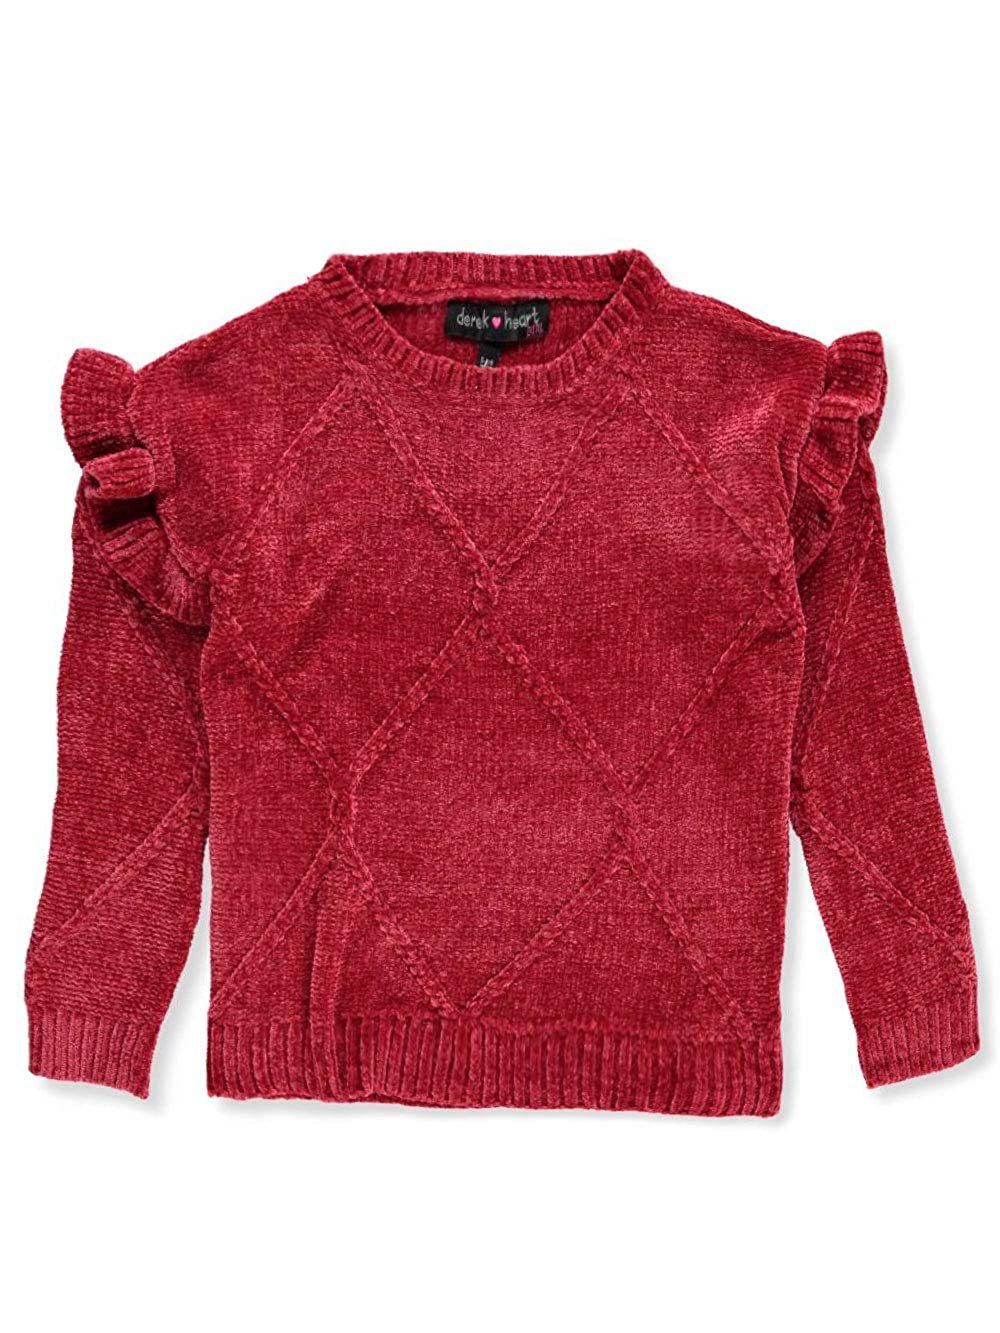 Derek Heart Girls' Sweater